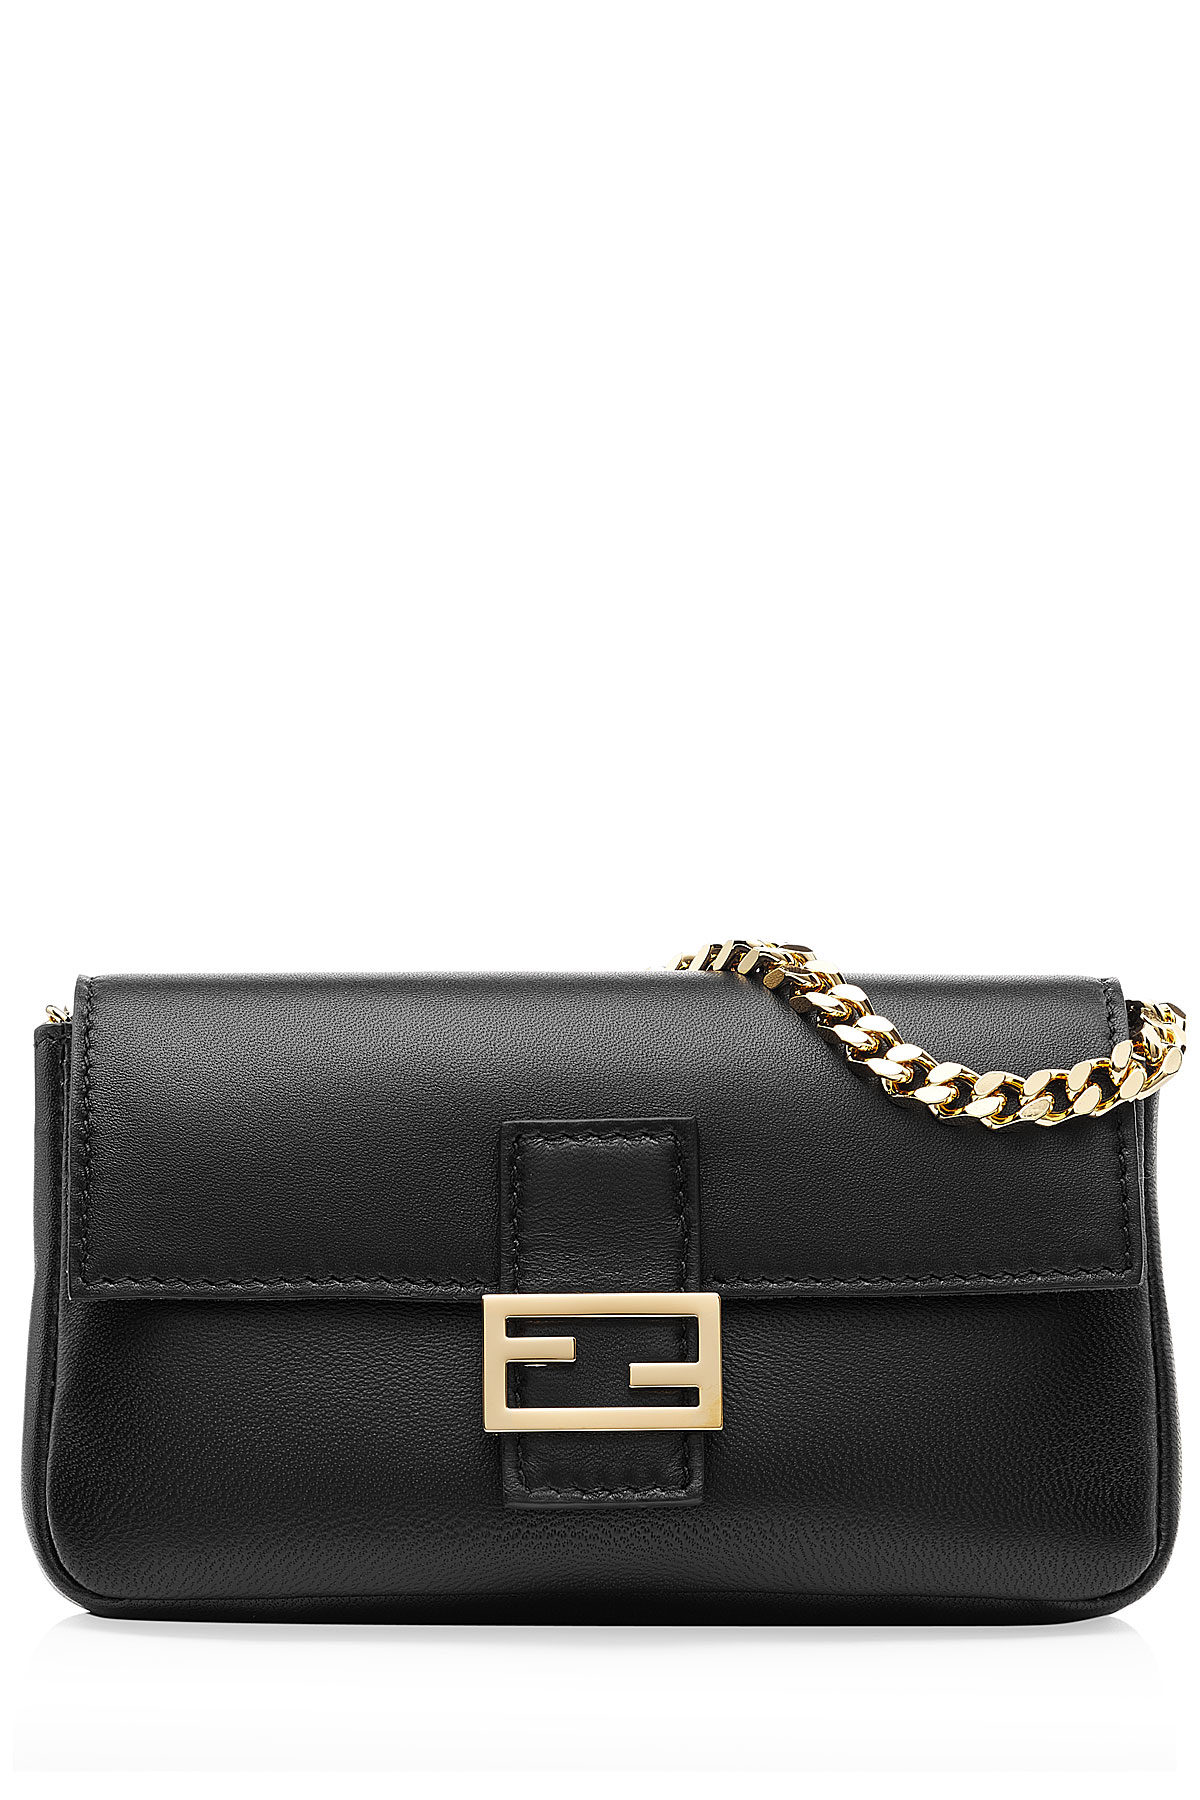 91aaa21e3e ... switzerland lyst fendi micro baguette leather shoulder bag black in  black fc700 2b21a